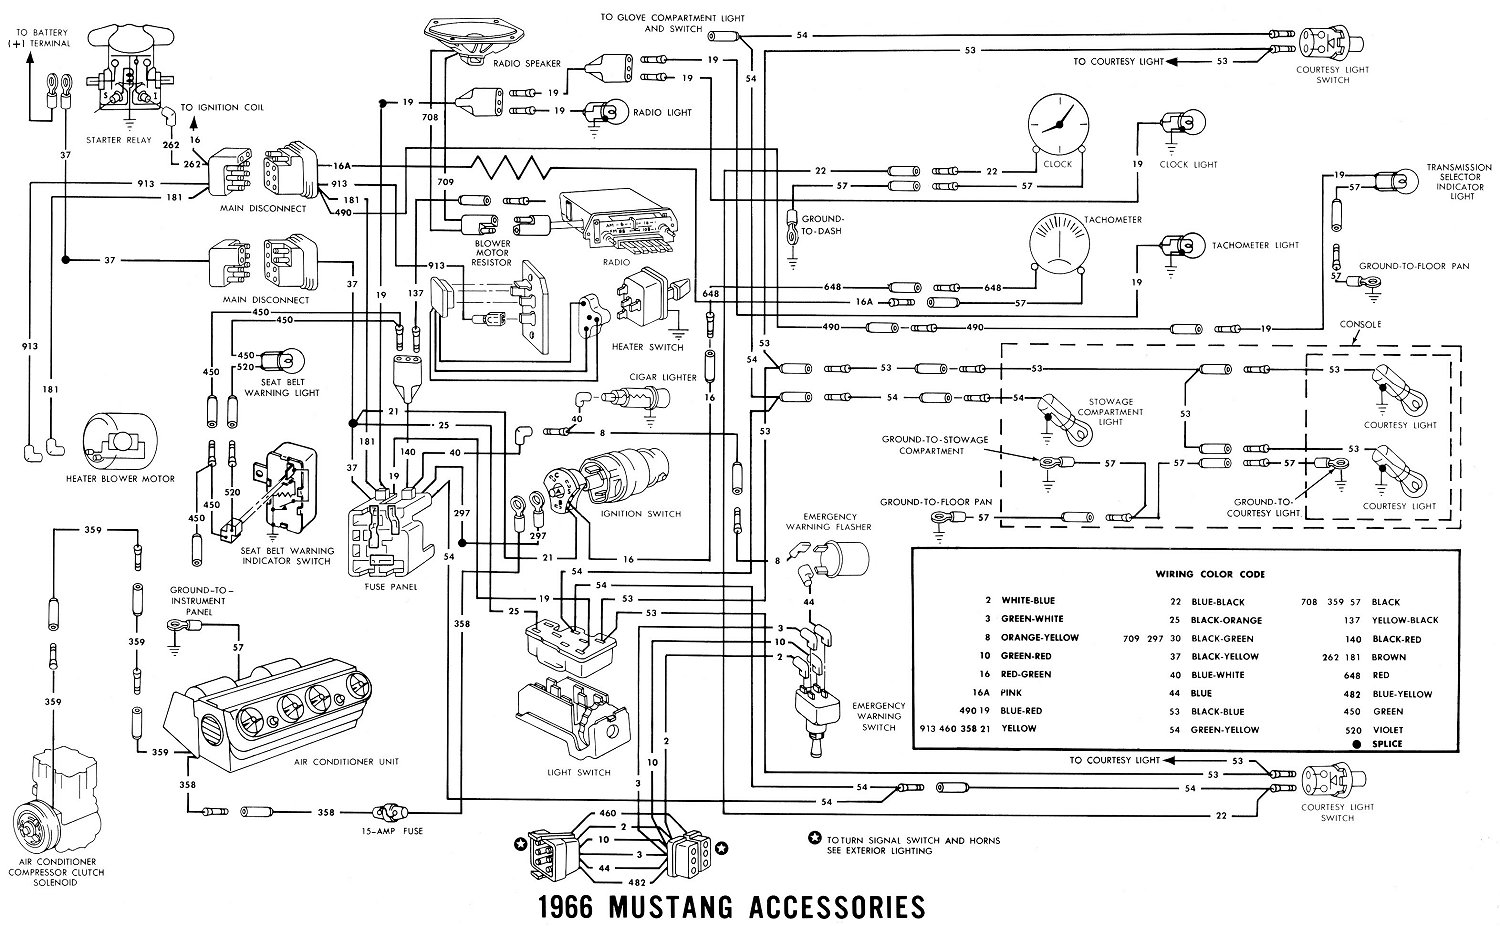 1966 Ford Mustang Accessories Wiring Diagram 2000 mustang gt wiring diagram 2000 mustang schematics \u2022 free 2000 ford mustang wiring diagram at bakdesigns.co